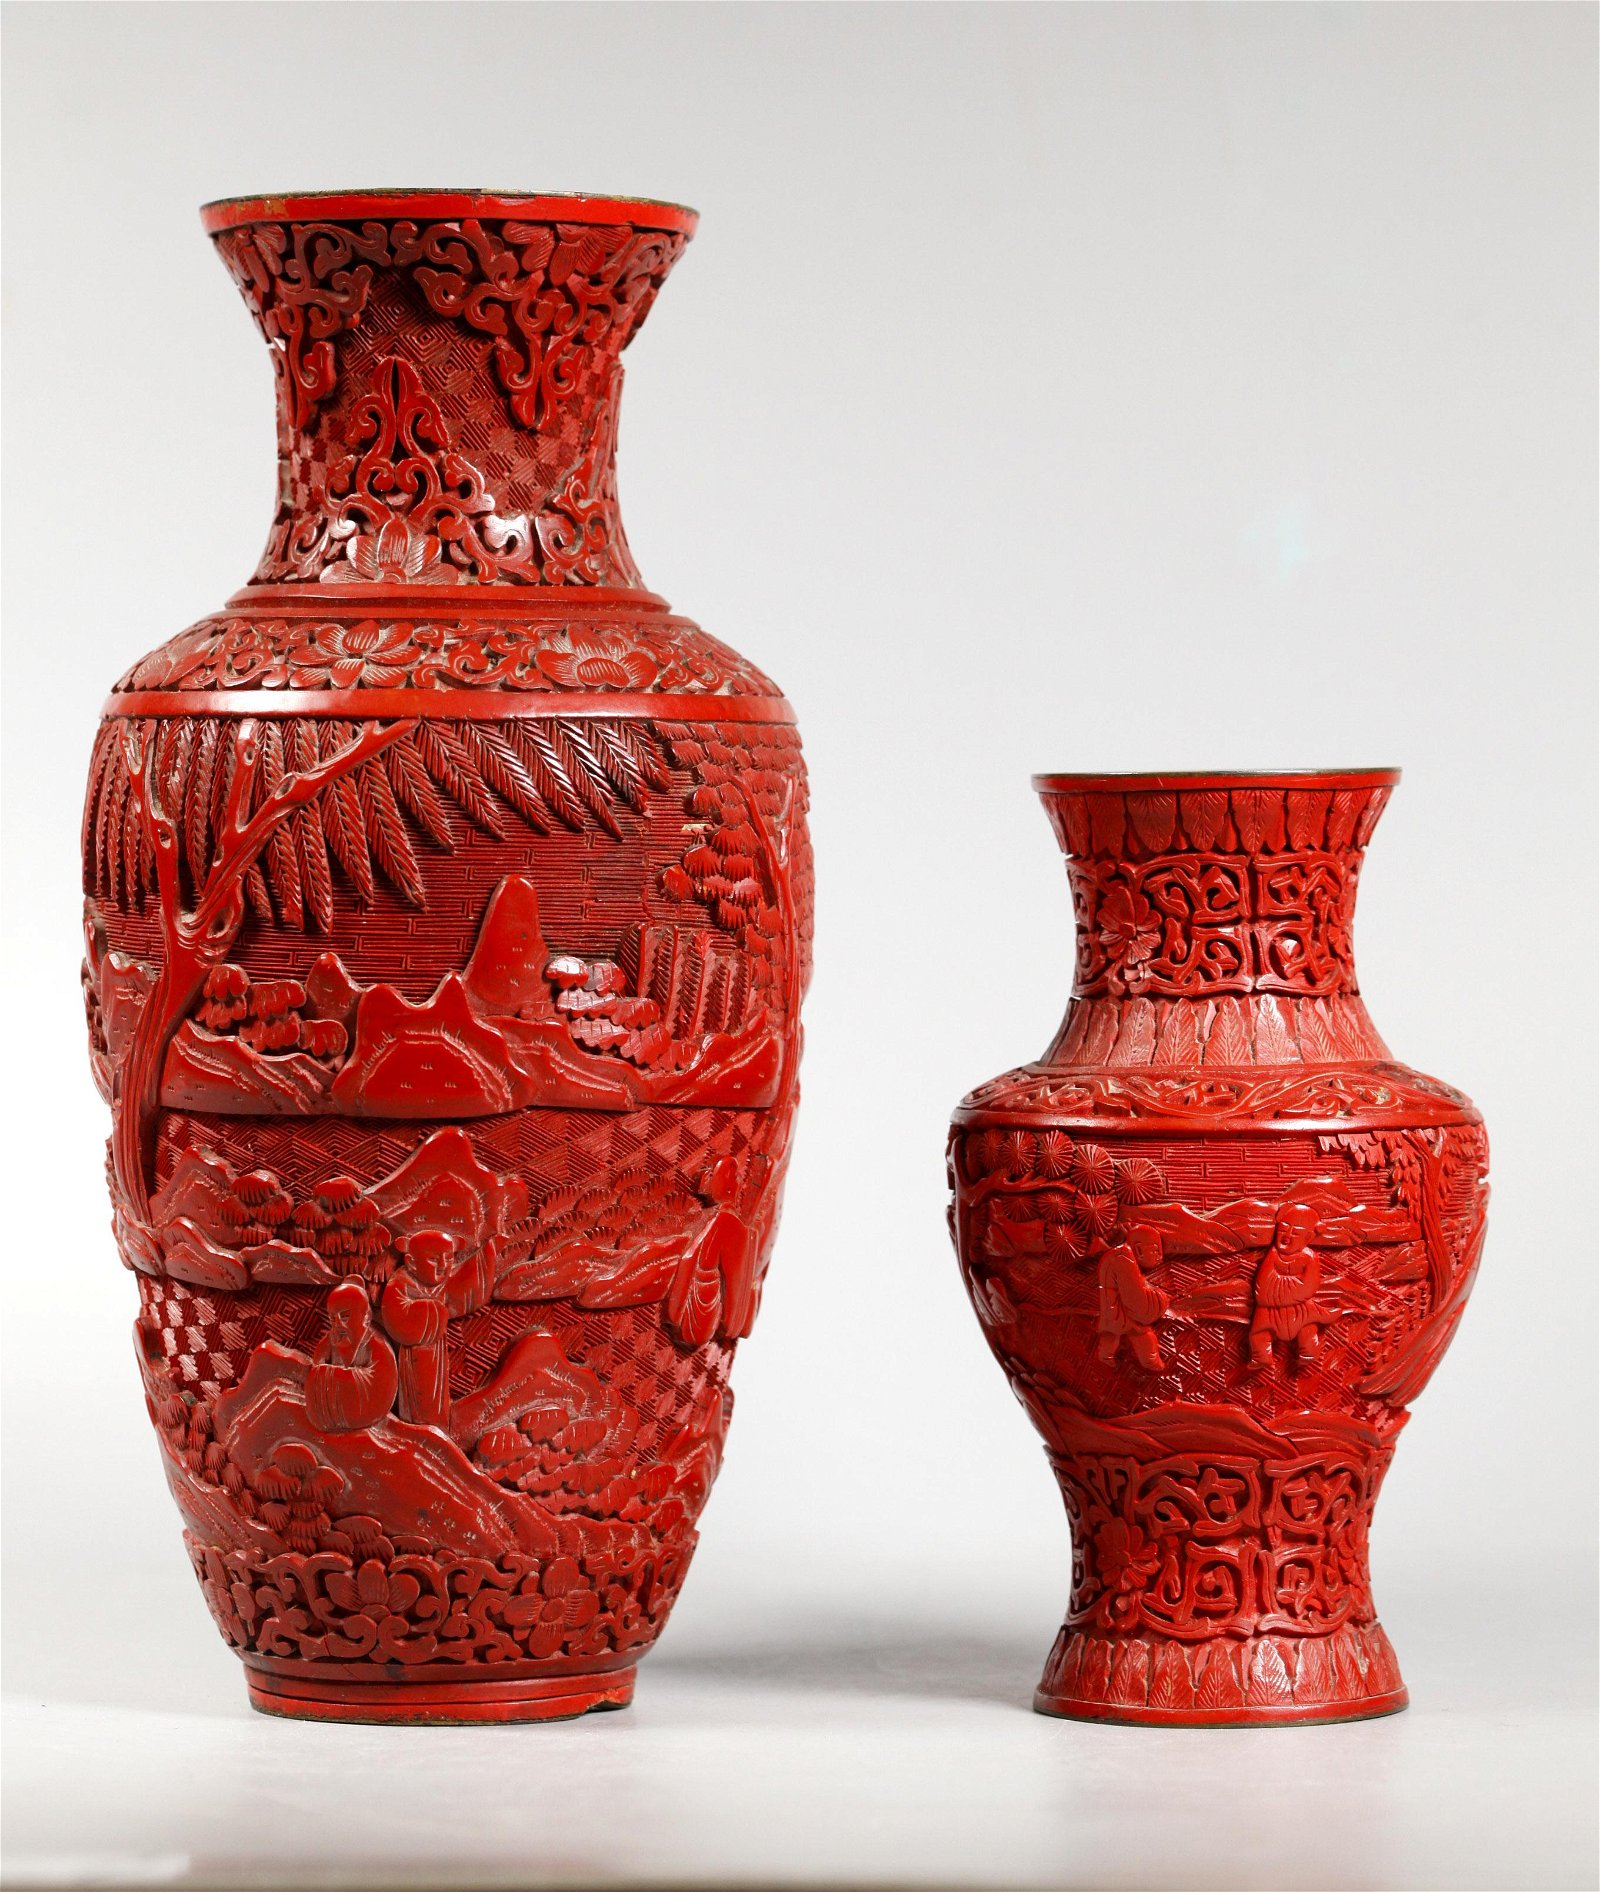 2 Chinese Carved Red Cinnabar Lacquer Vases